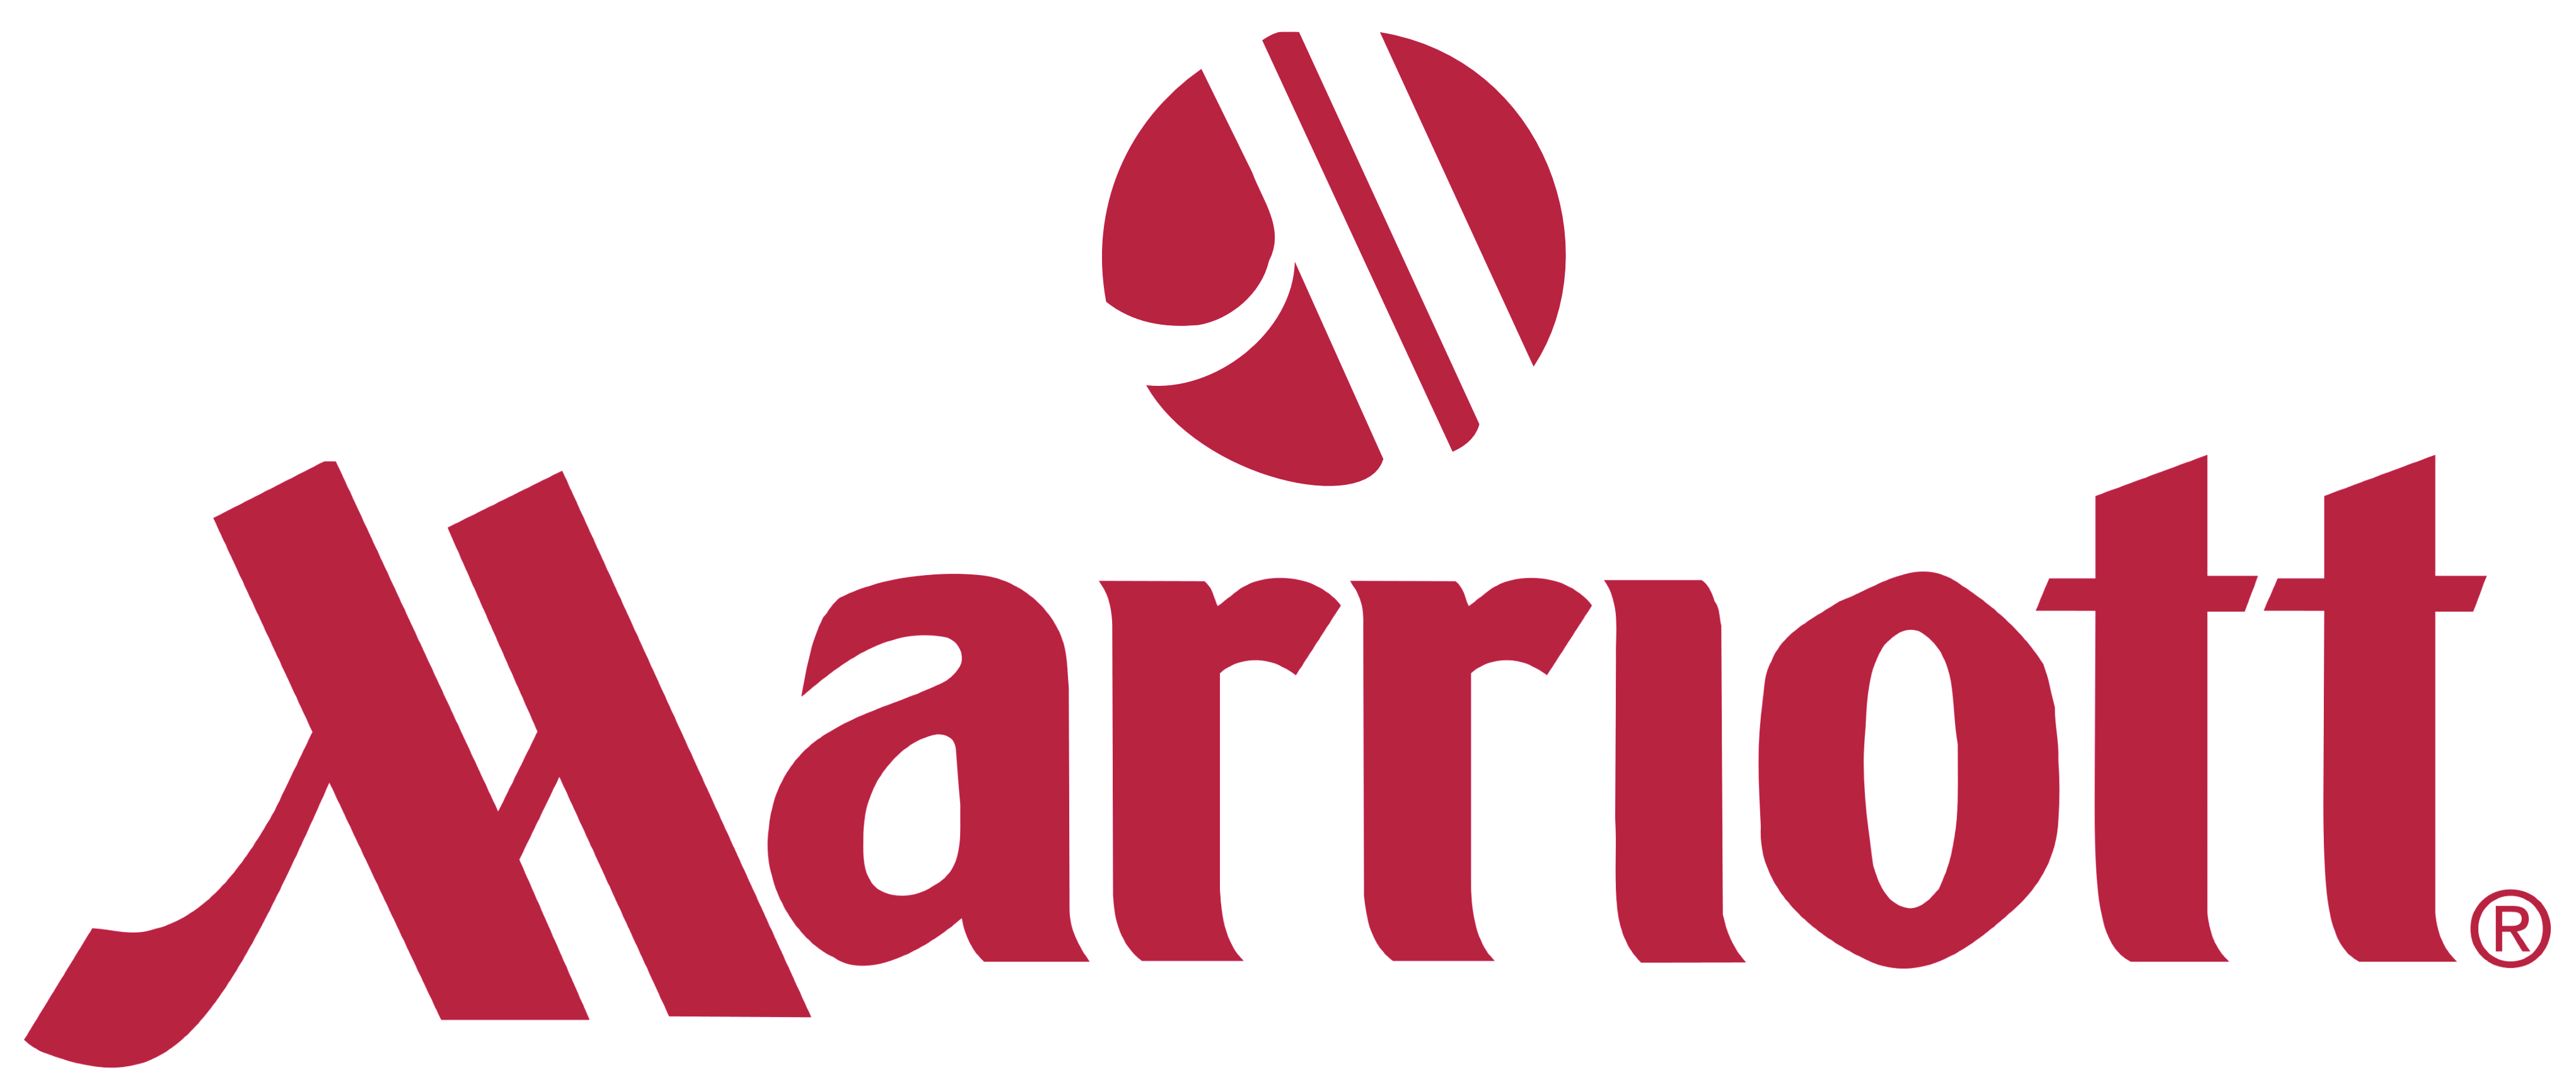 Marriott Hotel Chain